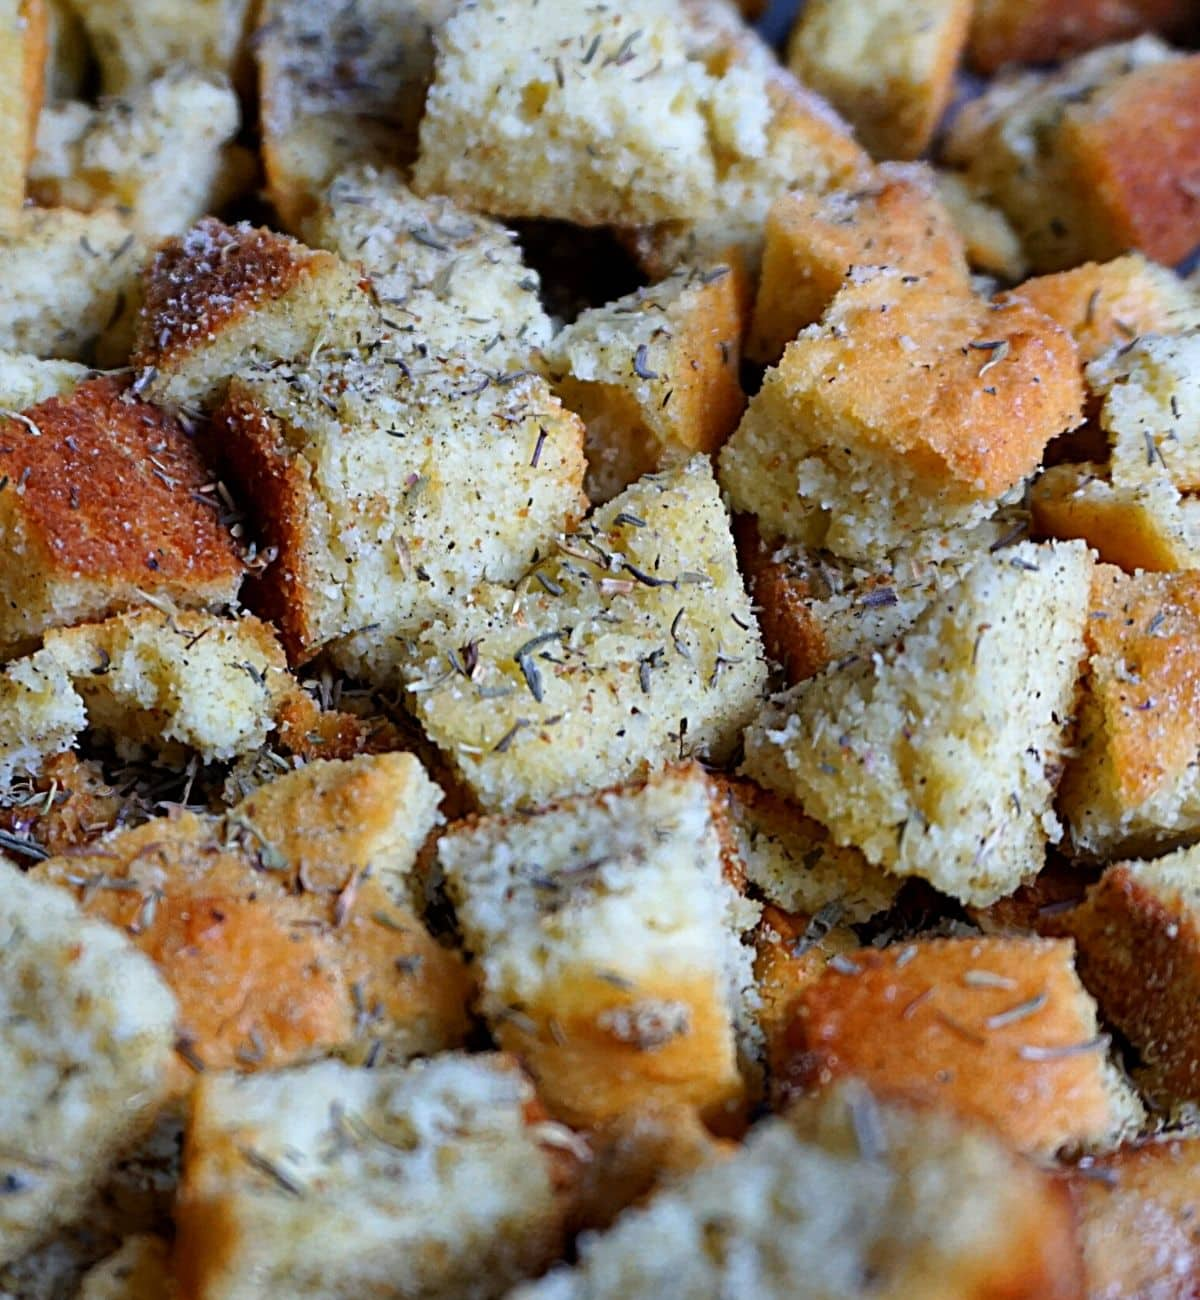 crunchy seasoned croutons for keto diet